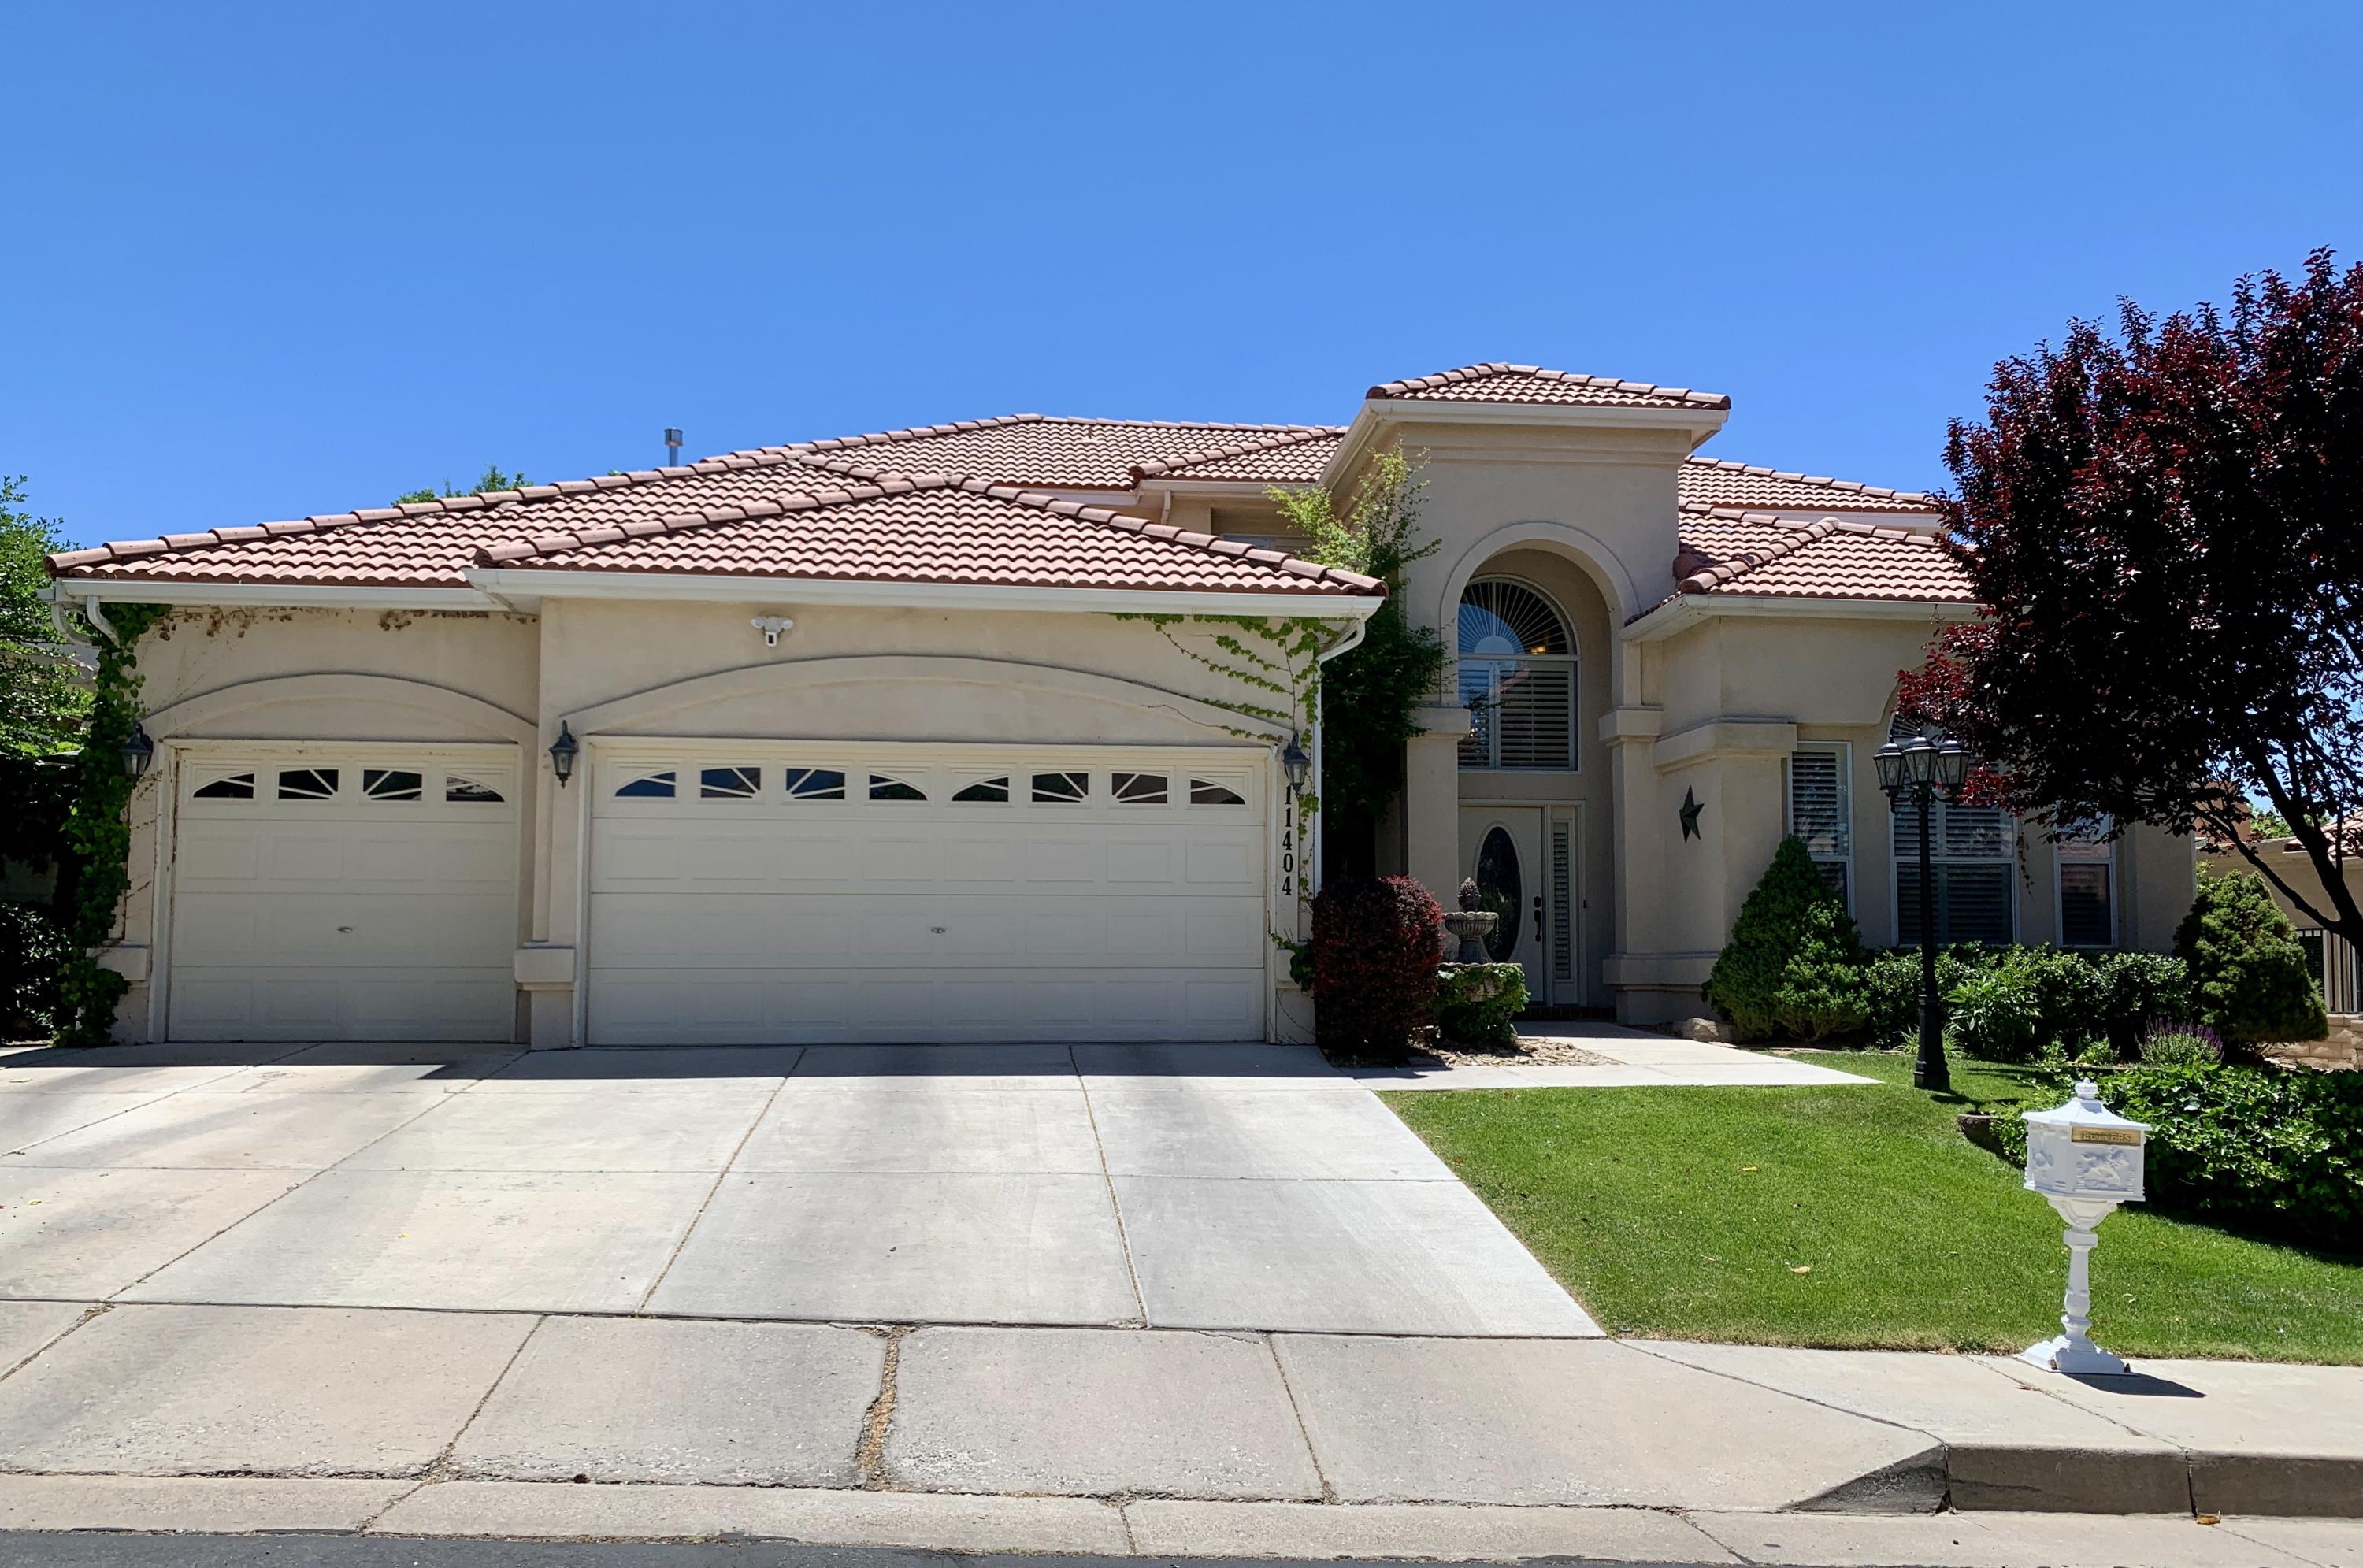 Beautiful home in gated Tanoan Country Club / Tanoan East. Master bedroom downstairs, 3 bedrooms upstairs.  Lots of updates, 3 car garage.  Private back yard. 2 living areas, big formal dining. Won't last long!